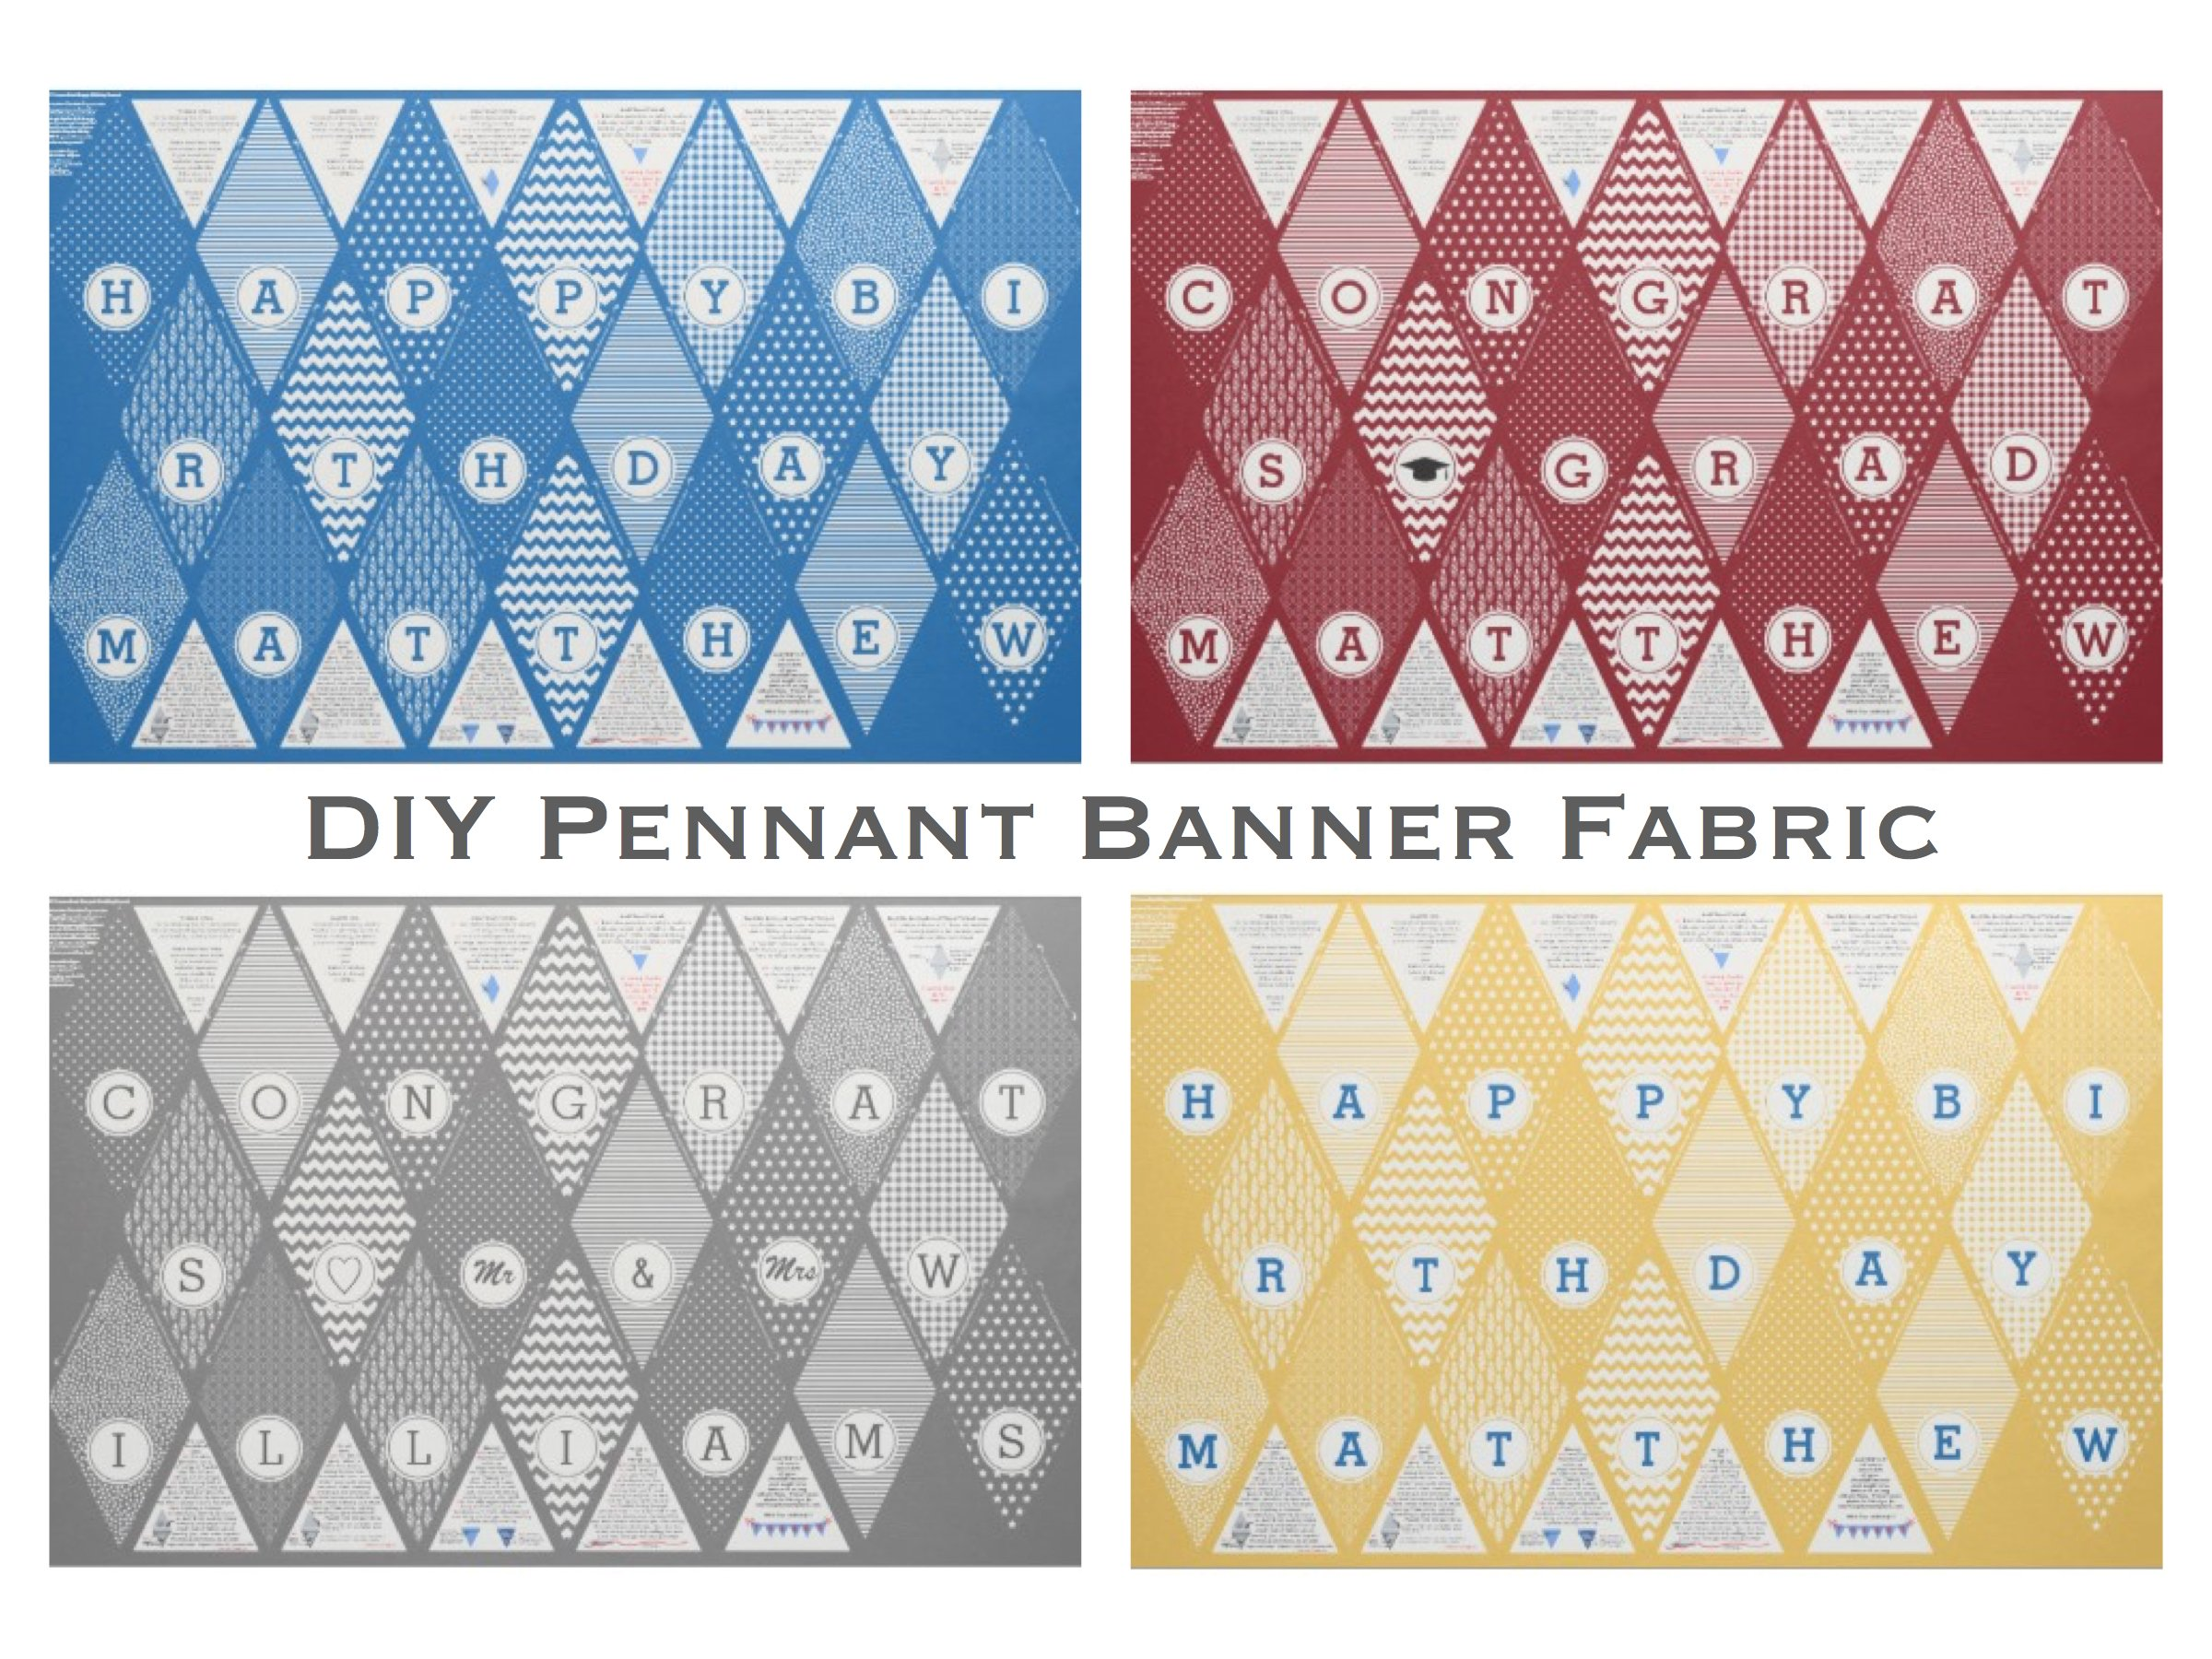 Custom DIY Pennant Banner Fabric